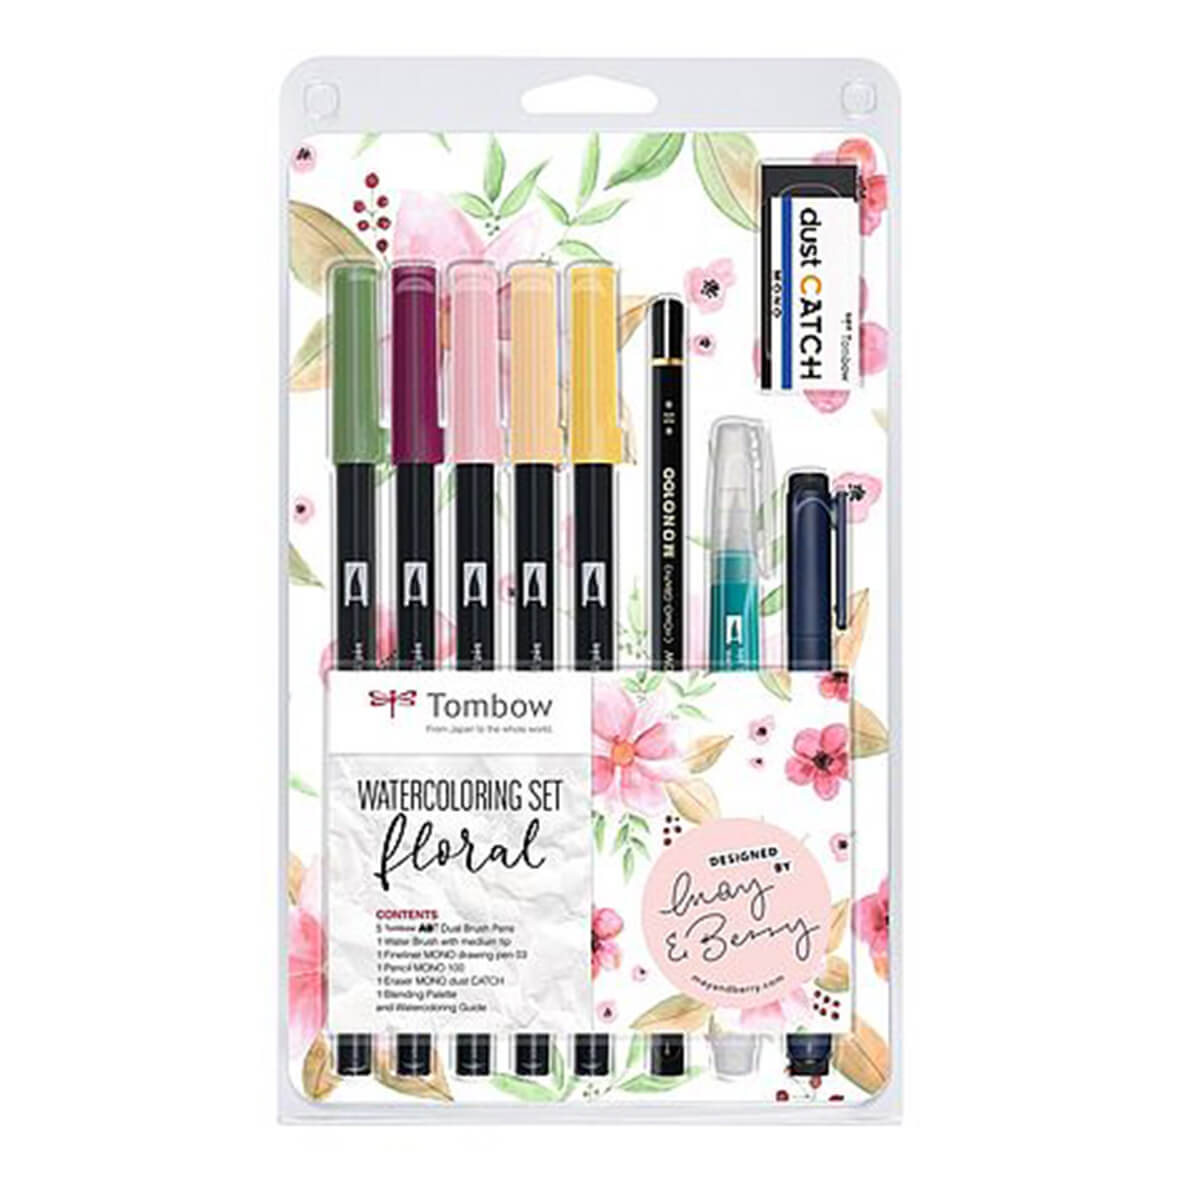 Tombow Watercoloring Set - Floral